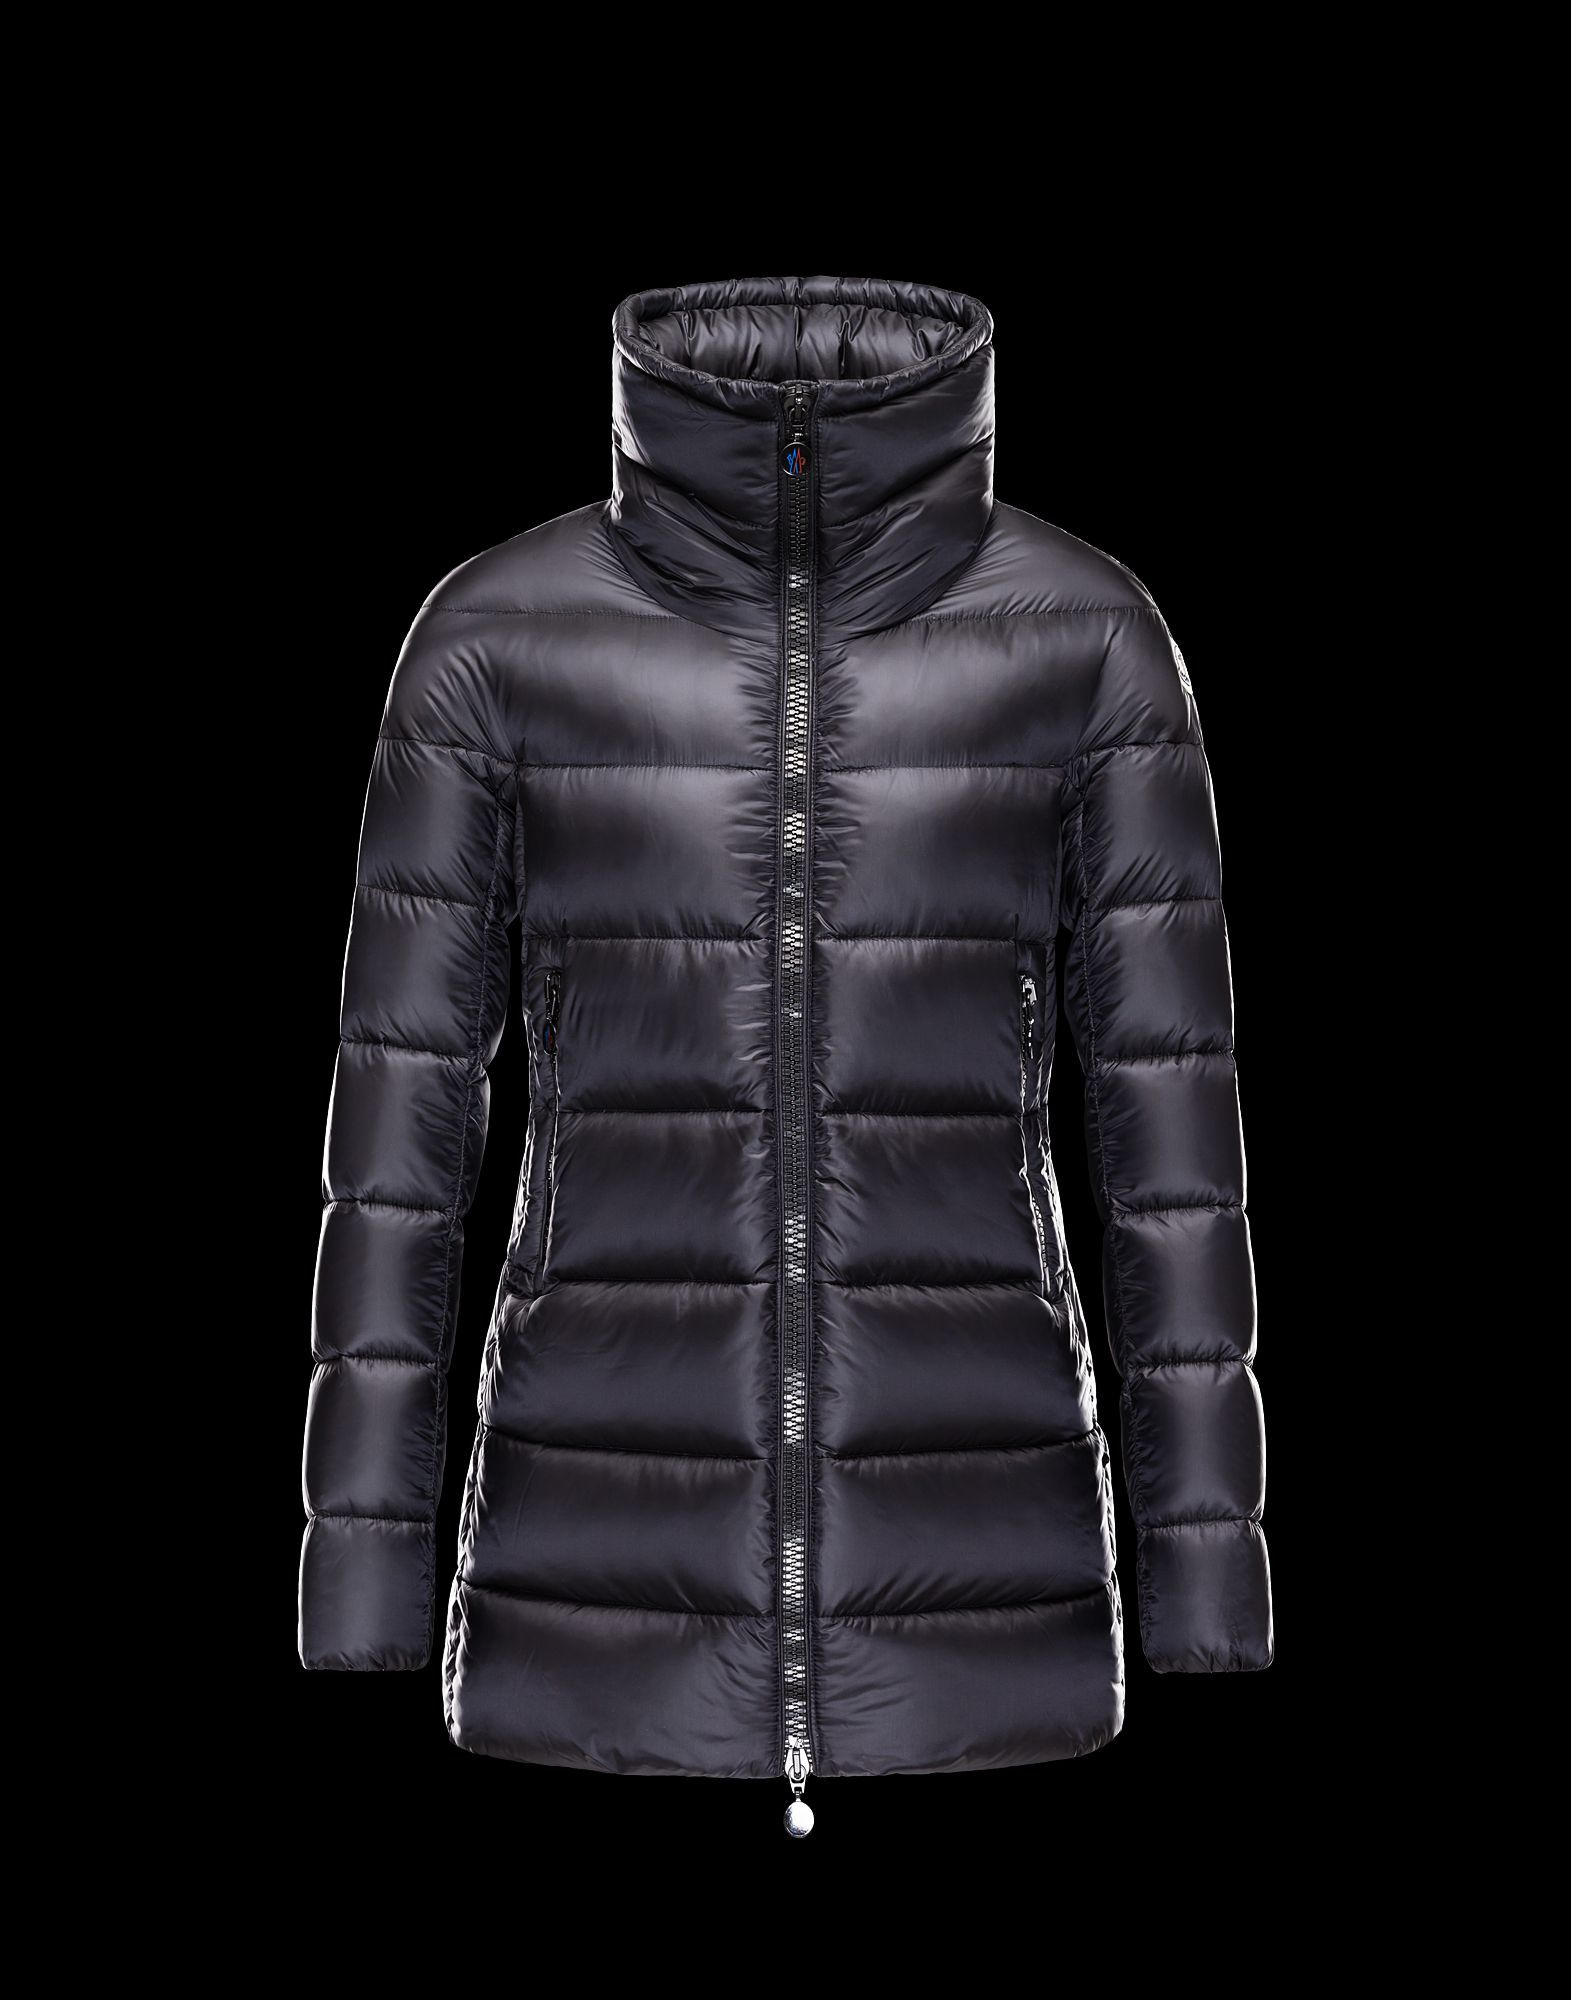 Cheap Moncler Coats Moncler jacket women, Moncler jacket